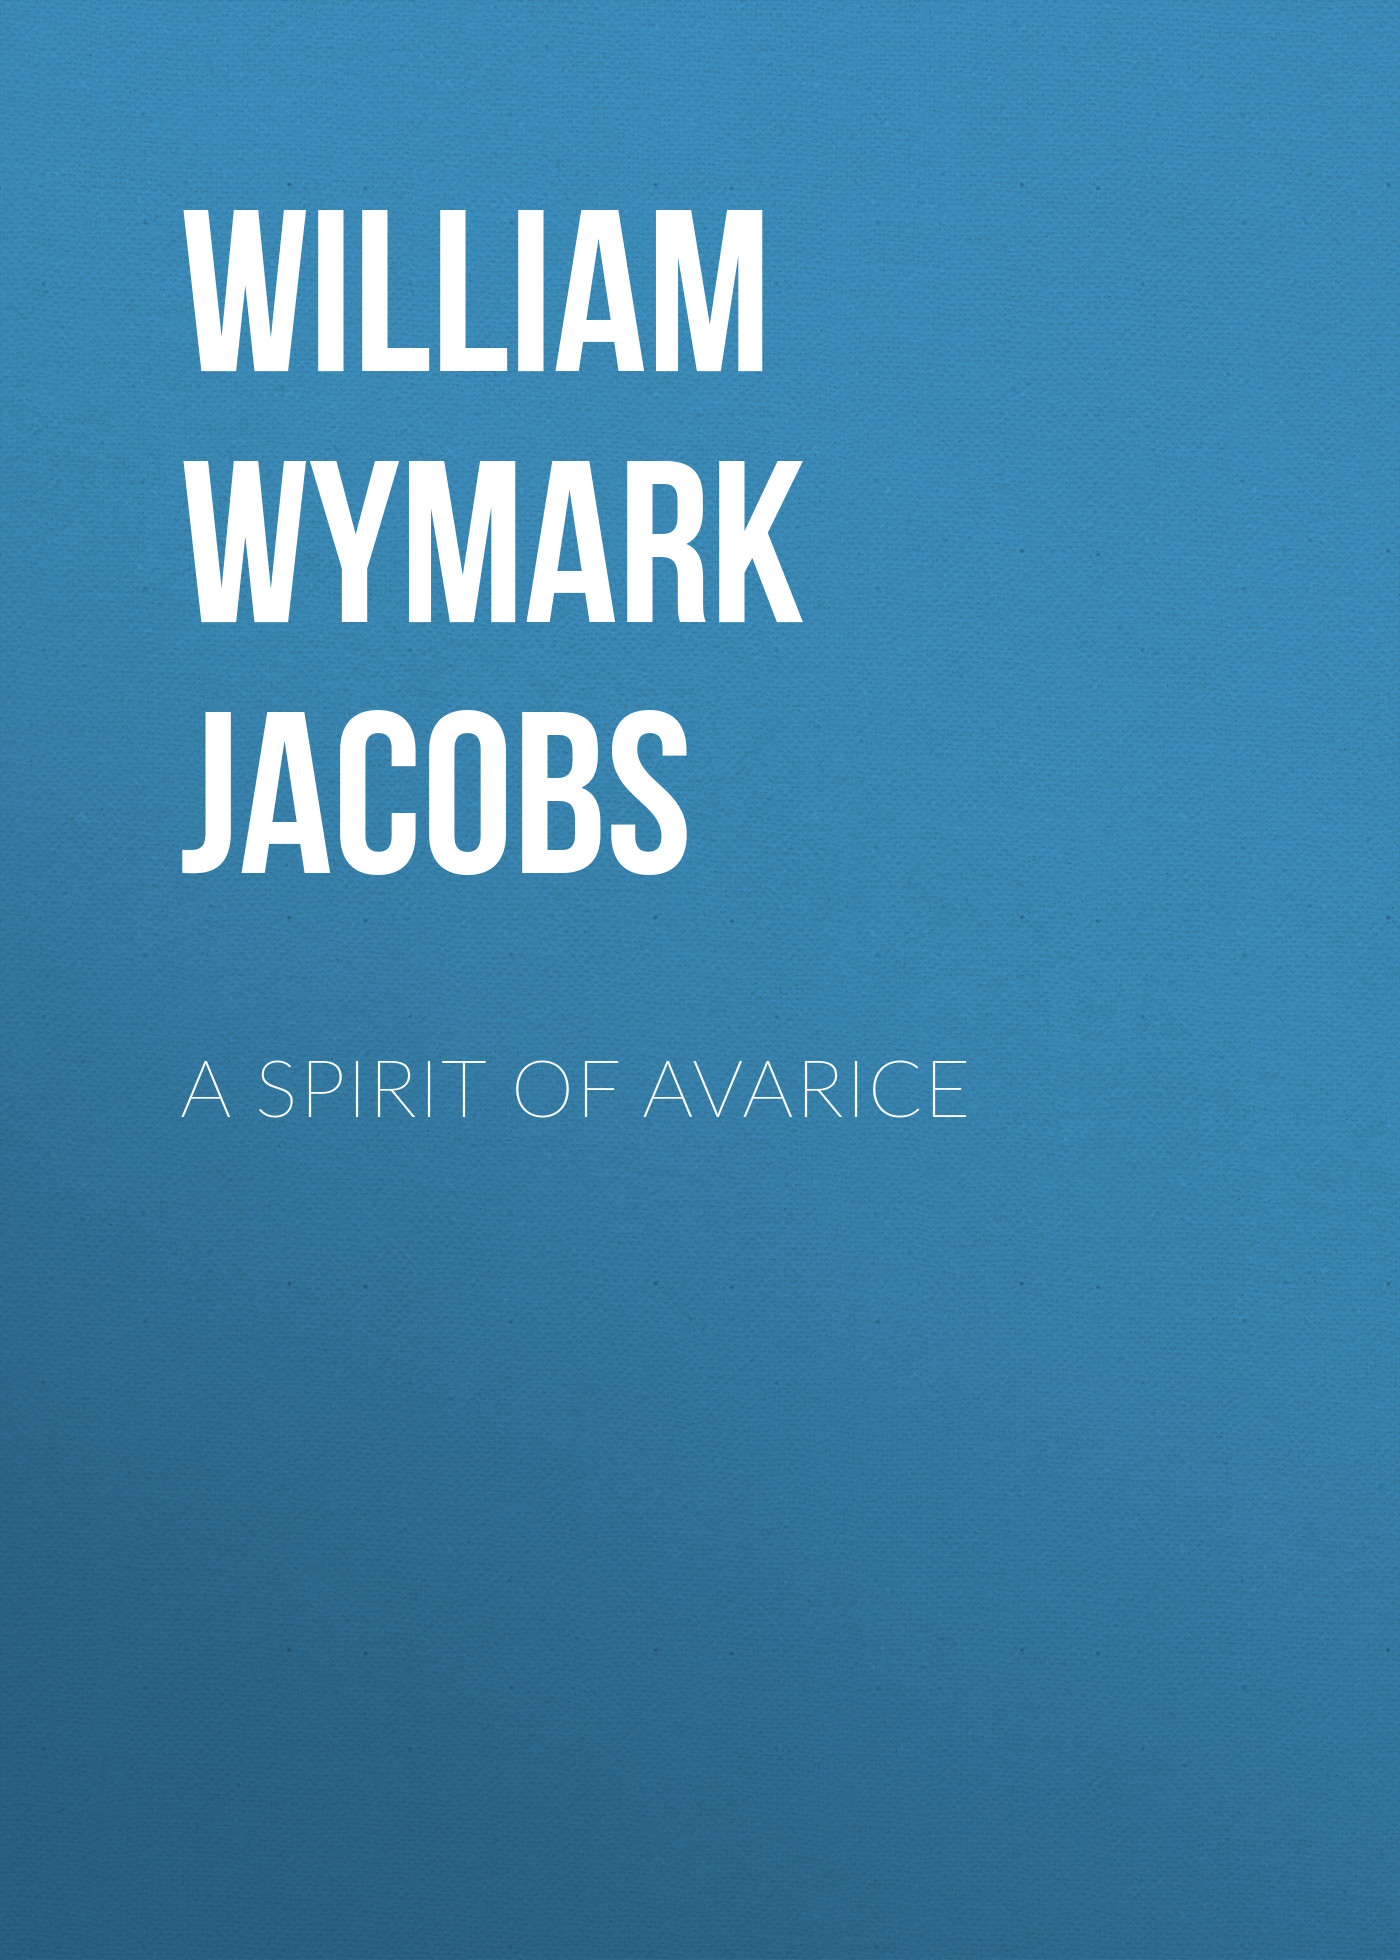 лучшая цена William Wymark Jacobs A Spirit of Avarice